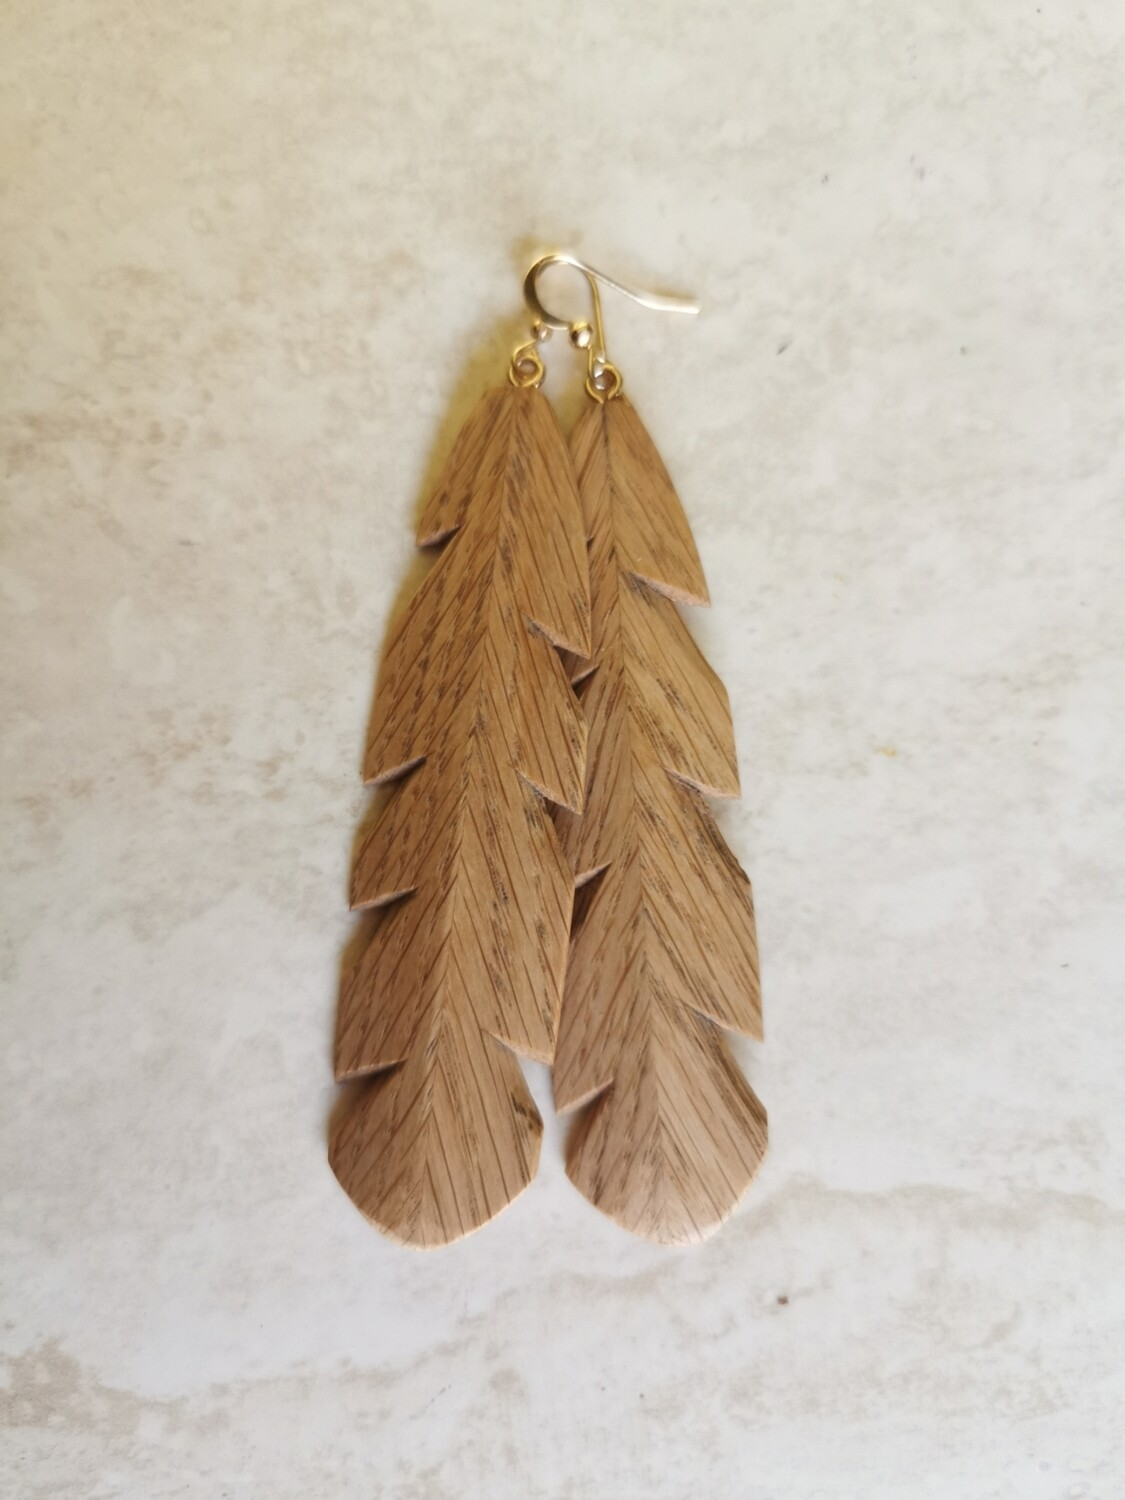 TUI CHIARA - Hand Carved Wooden Earrings